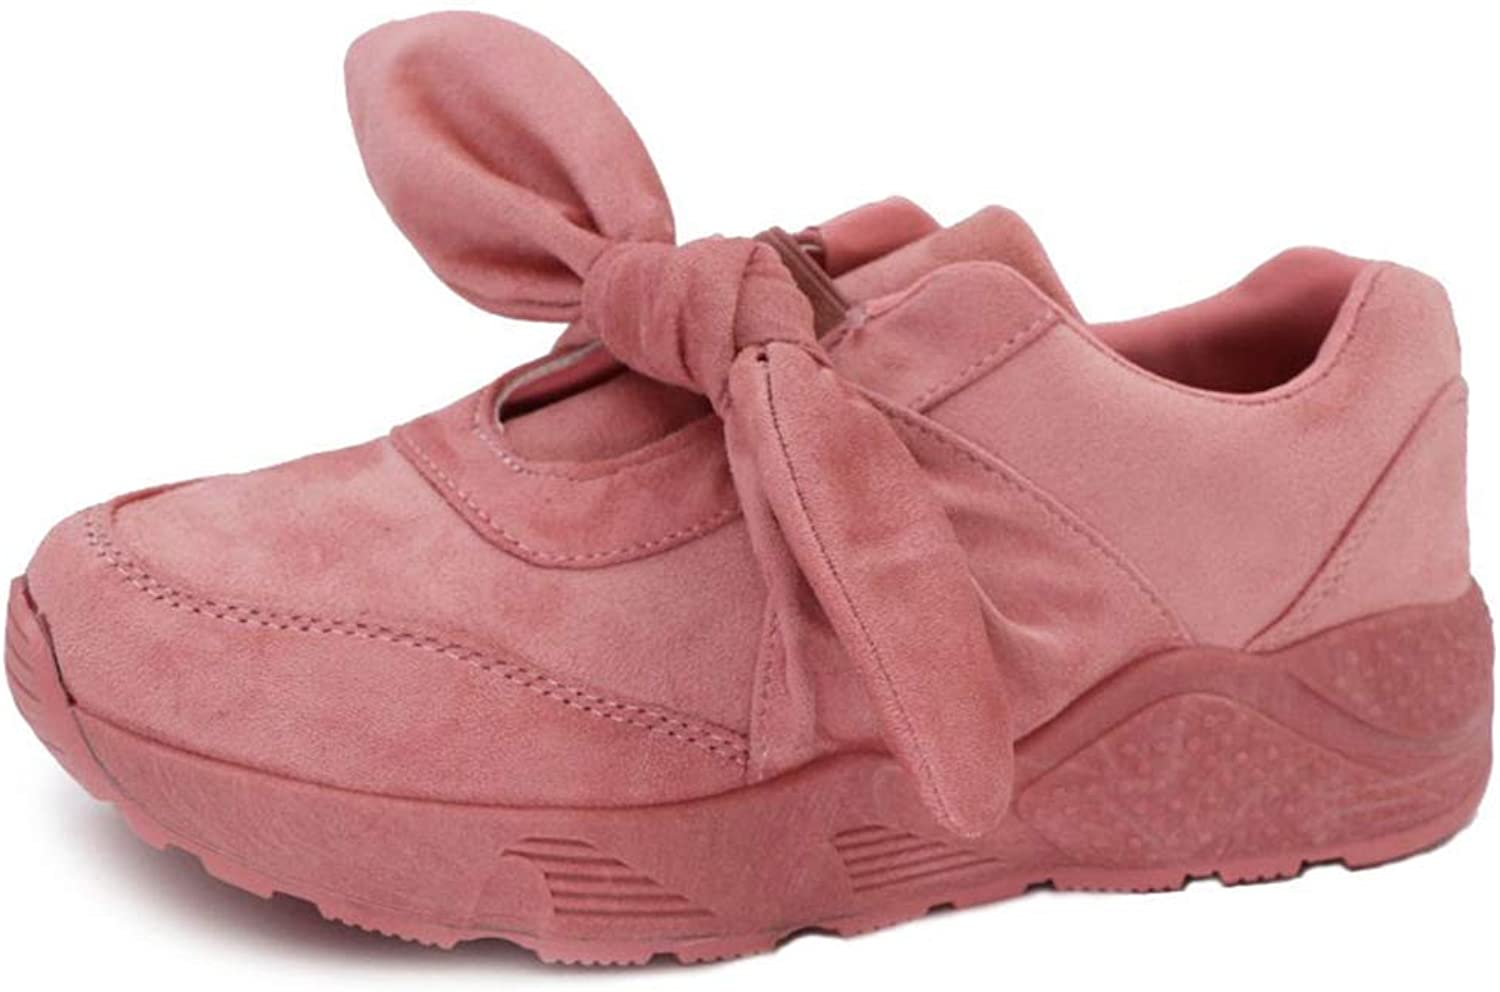 Lelehwhge Women Wedges Faux Suede Casual shoes Ladies Butterfly Knot Basket Canvas Sneakers Pink 9 M US